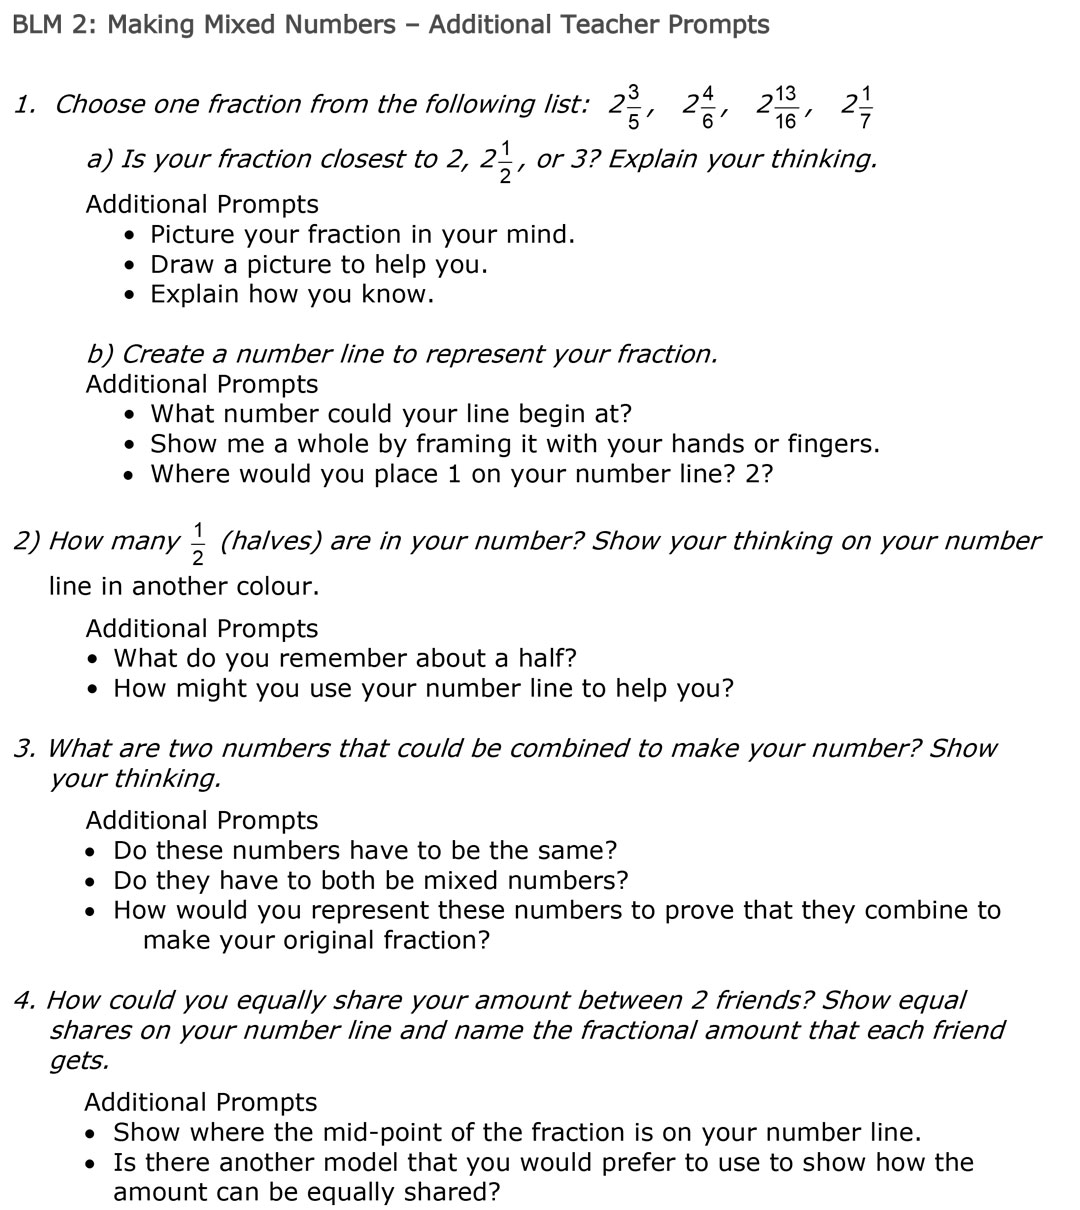 Making Mixed Numbers BLM 2